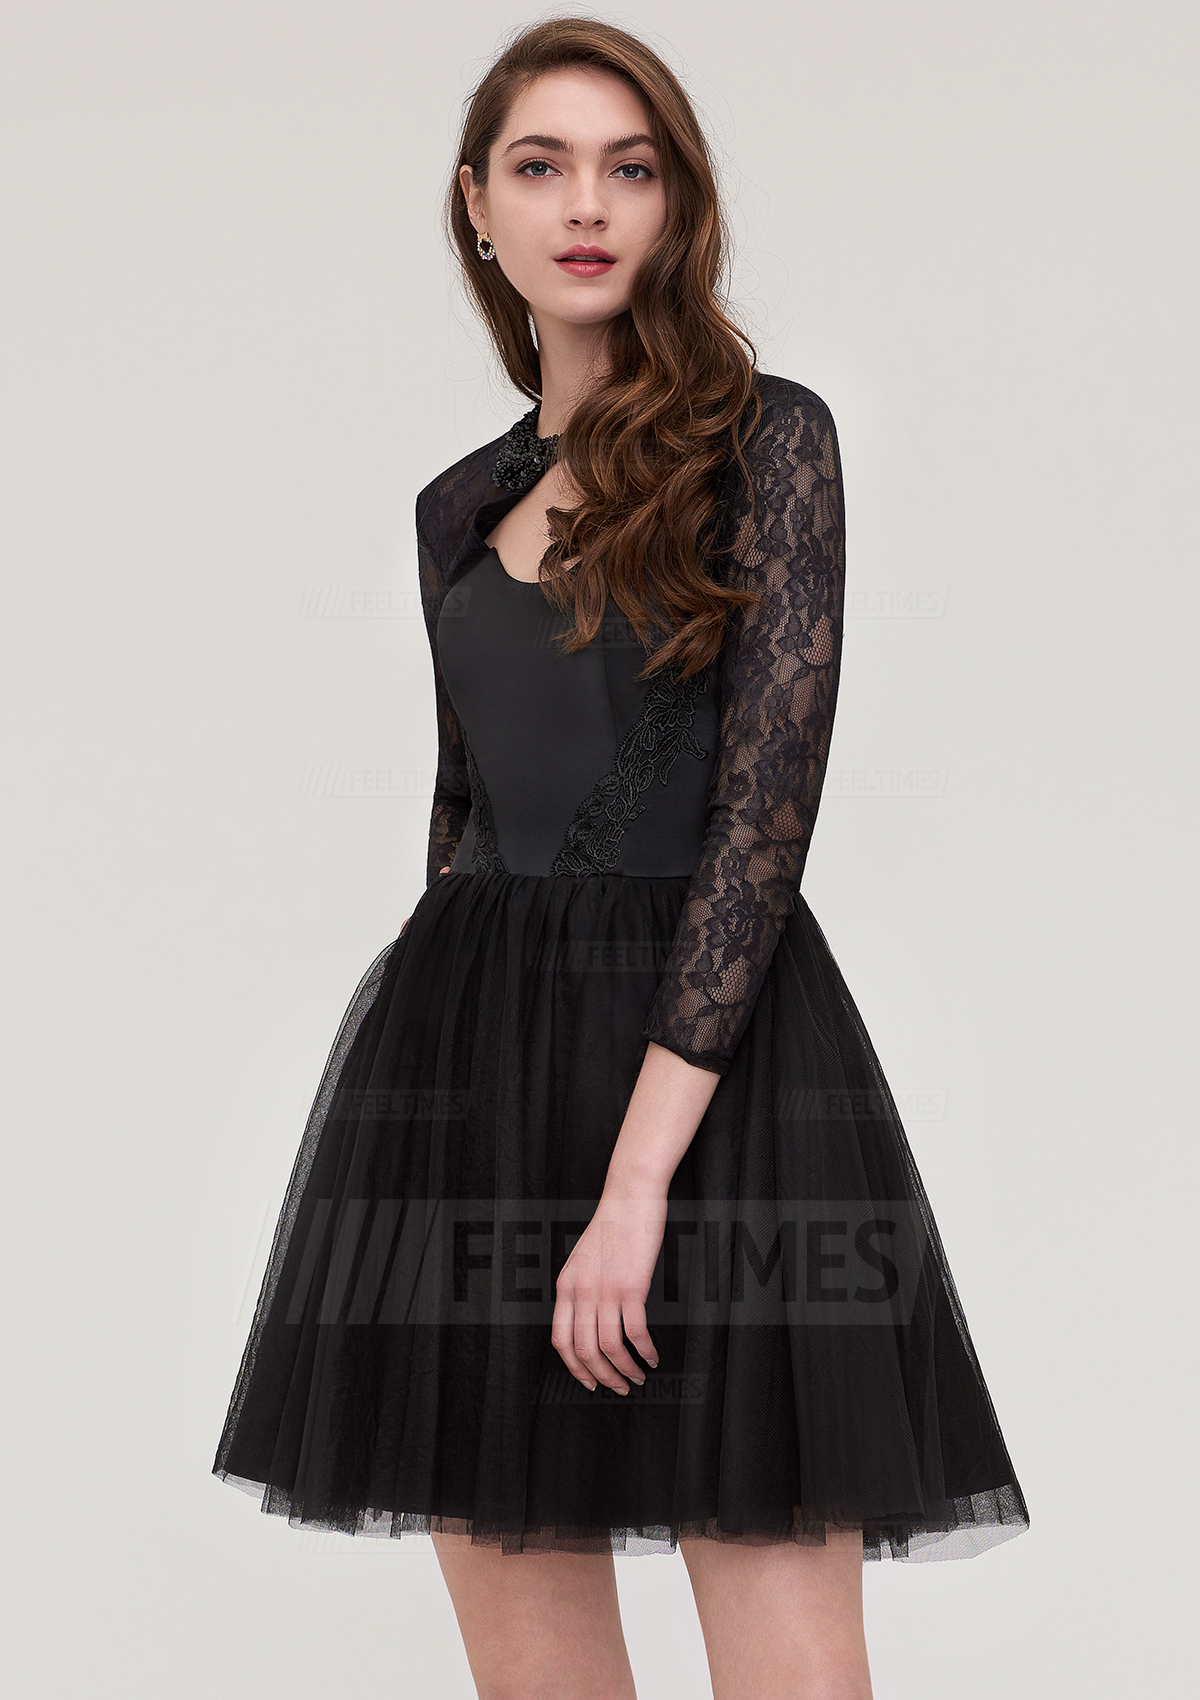 A-Line/Princess Scoop Neck Full/Long Sleeve Short/Mini Tulle Homecoming Dress With Lace